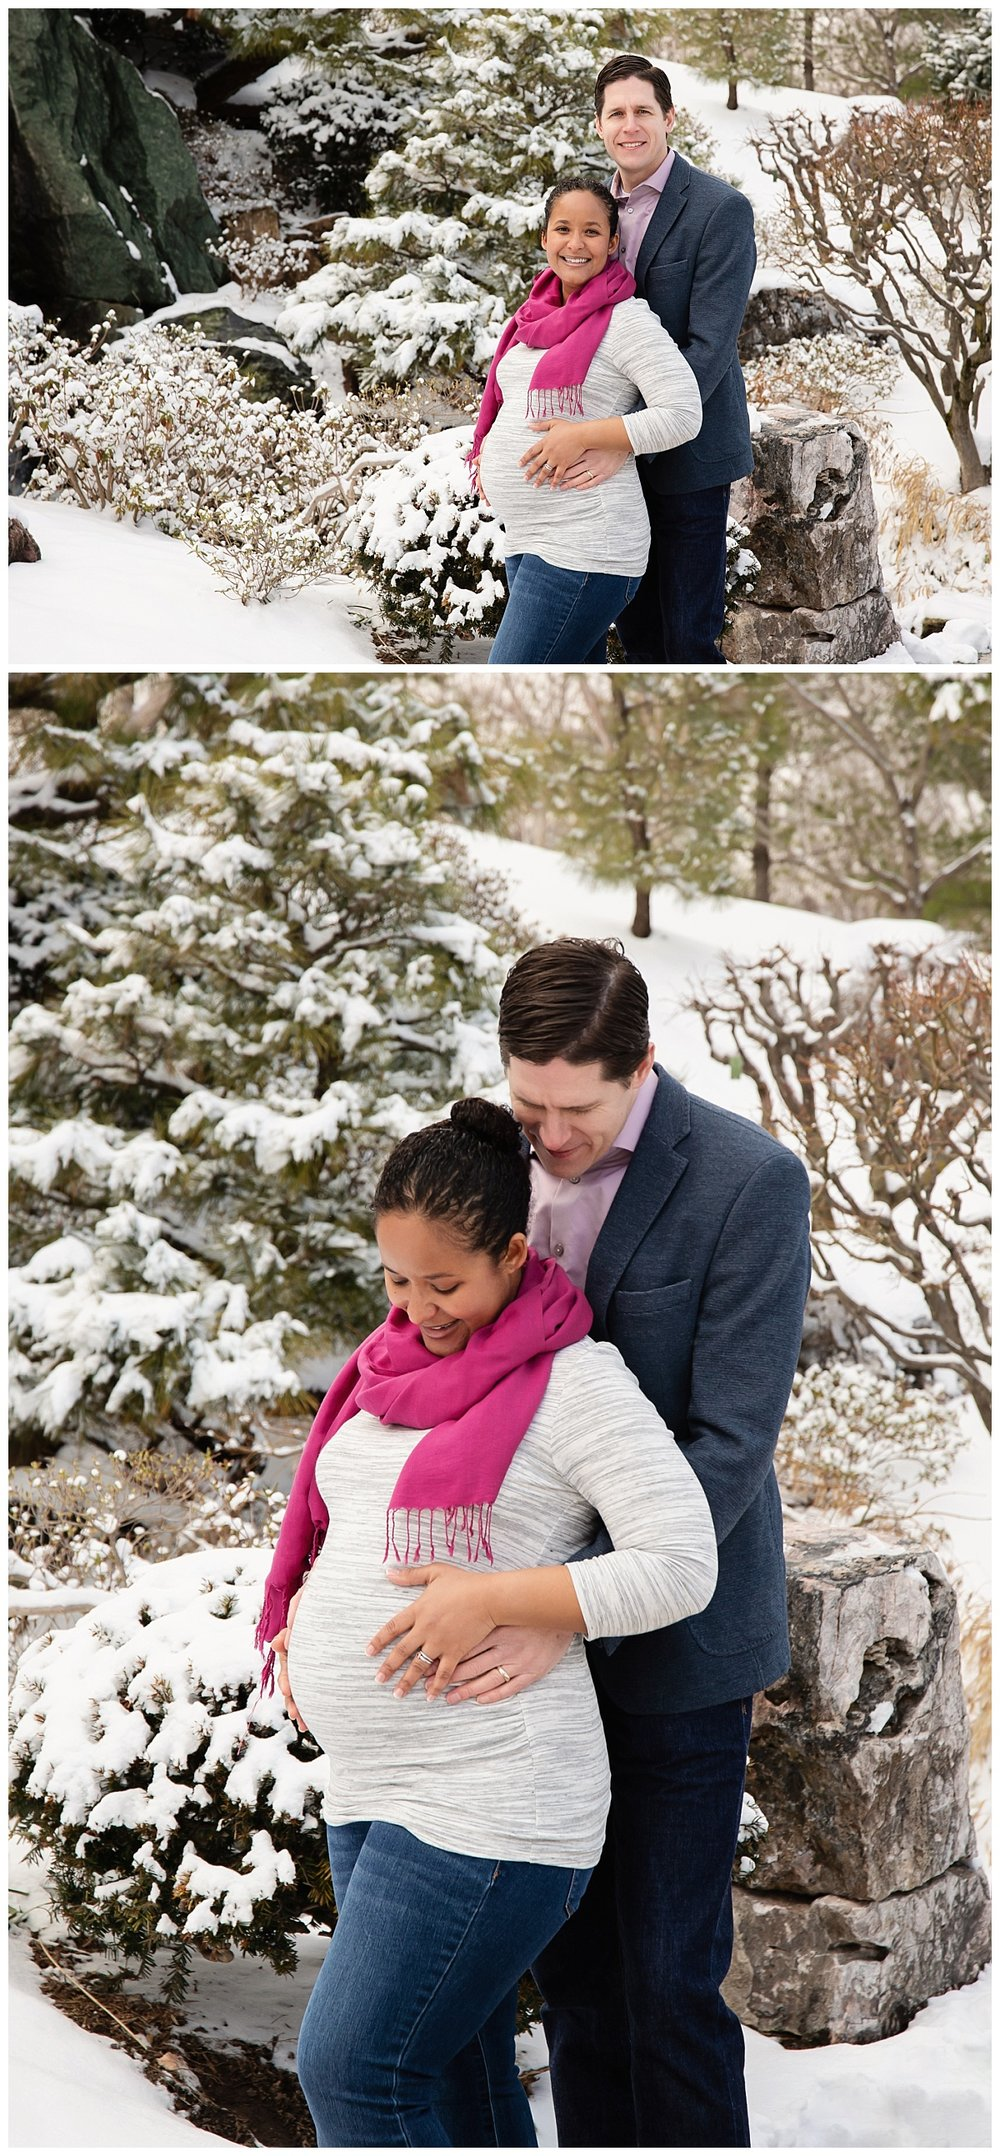 st-louis-maternity-photographer-outdoor-in-the-snow-at-missouri-botanical-gardens-mobot.jpg